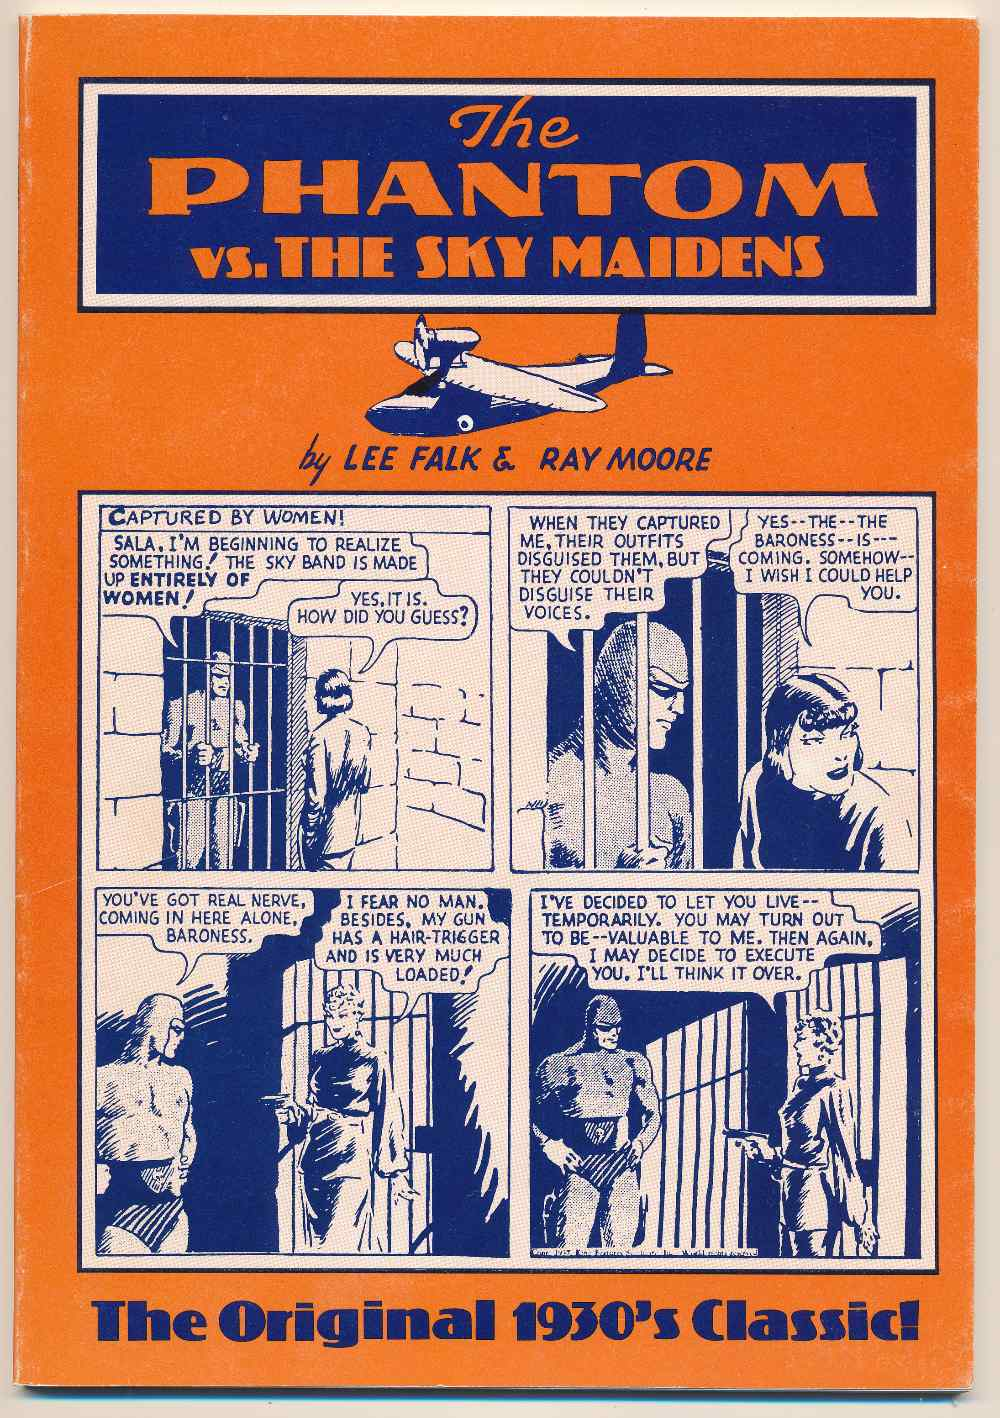 The Phantom vs. the sky maidens